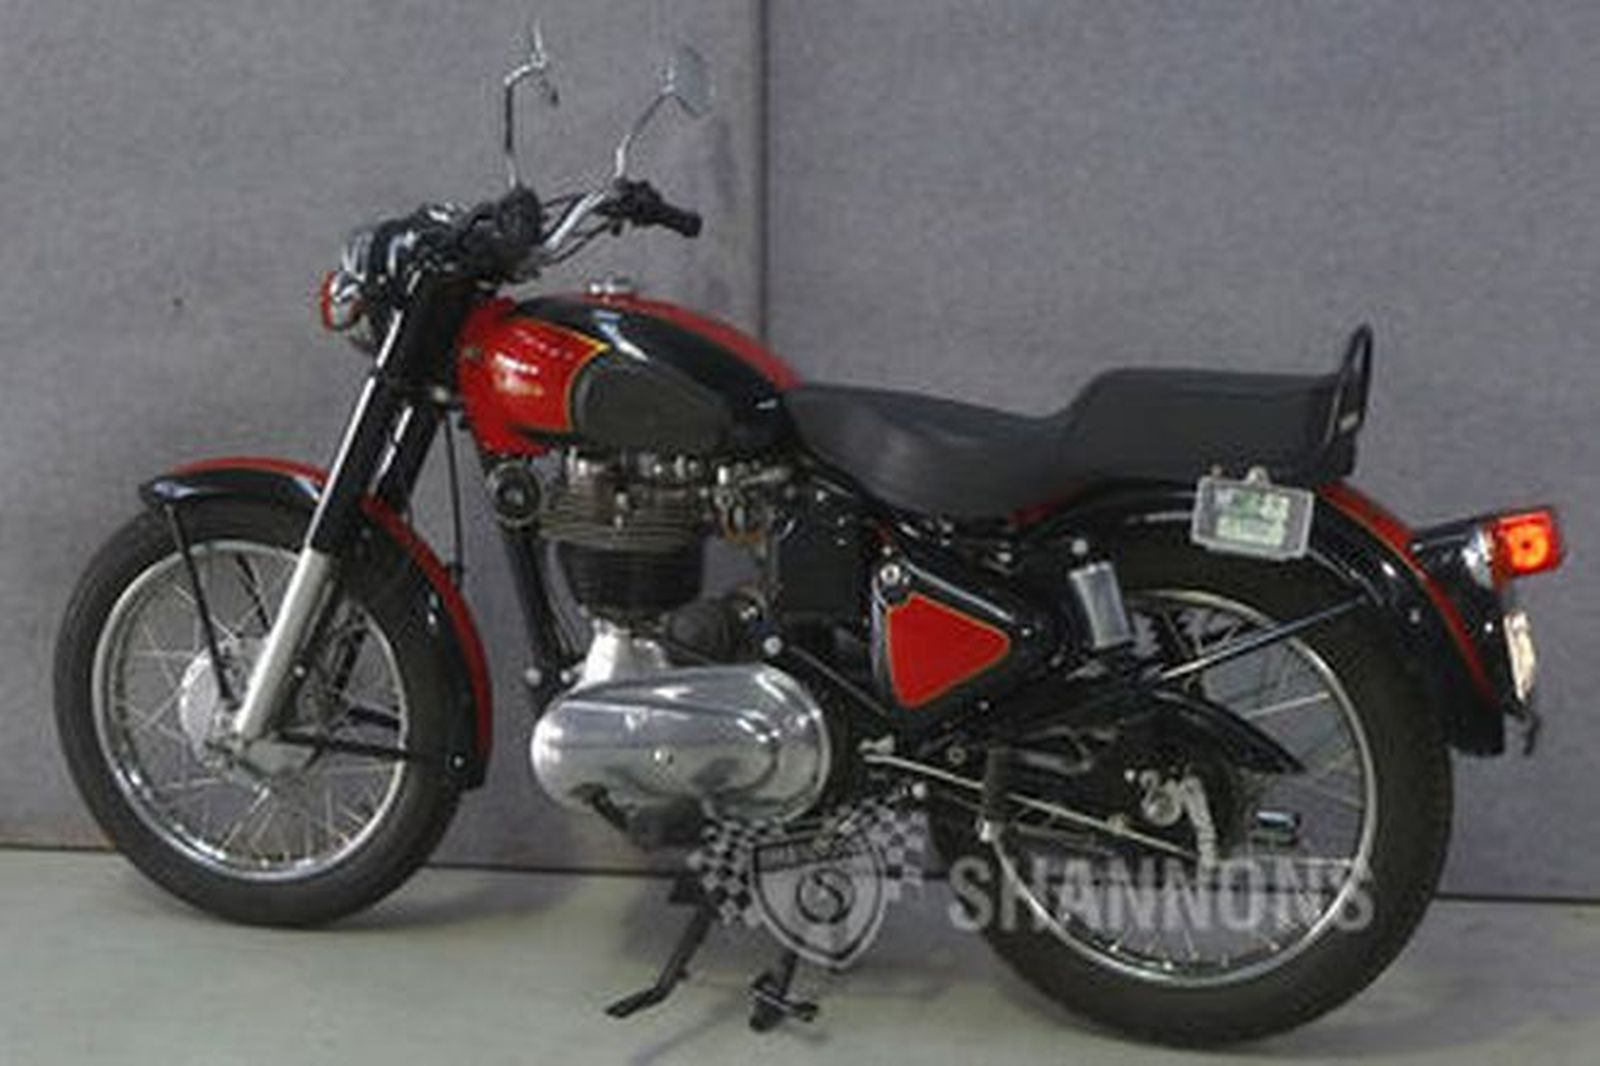 Royal Enfield 500cc Motorcycle Auctions Lot 3 Shannons